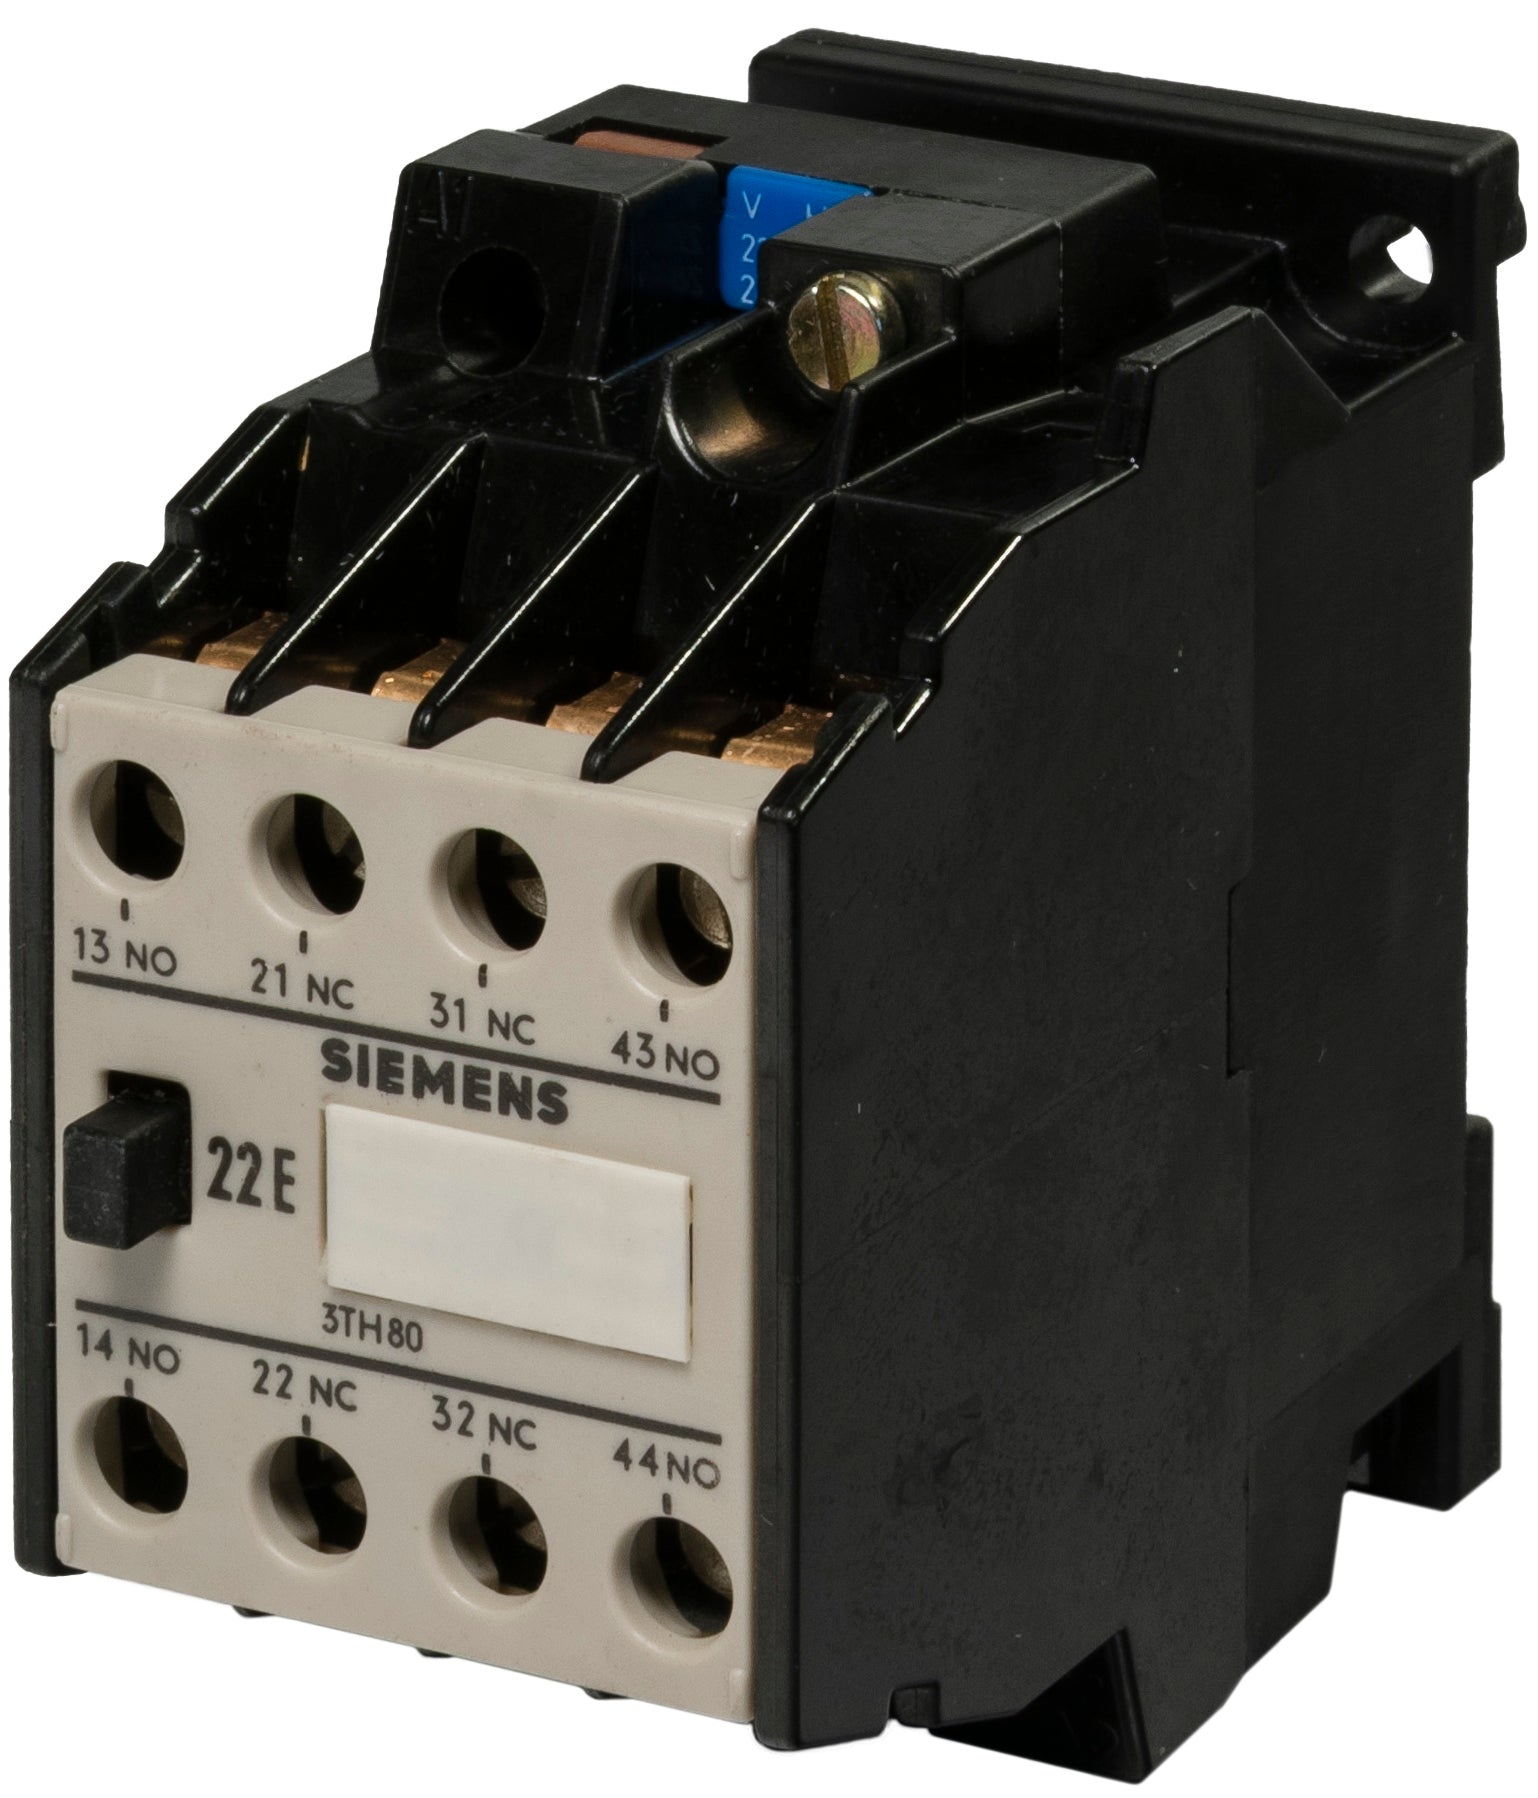 3th8 Control Relays Siemens Relay No Nc Contacts With 4 Fixed